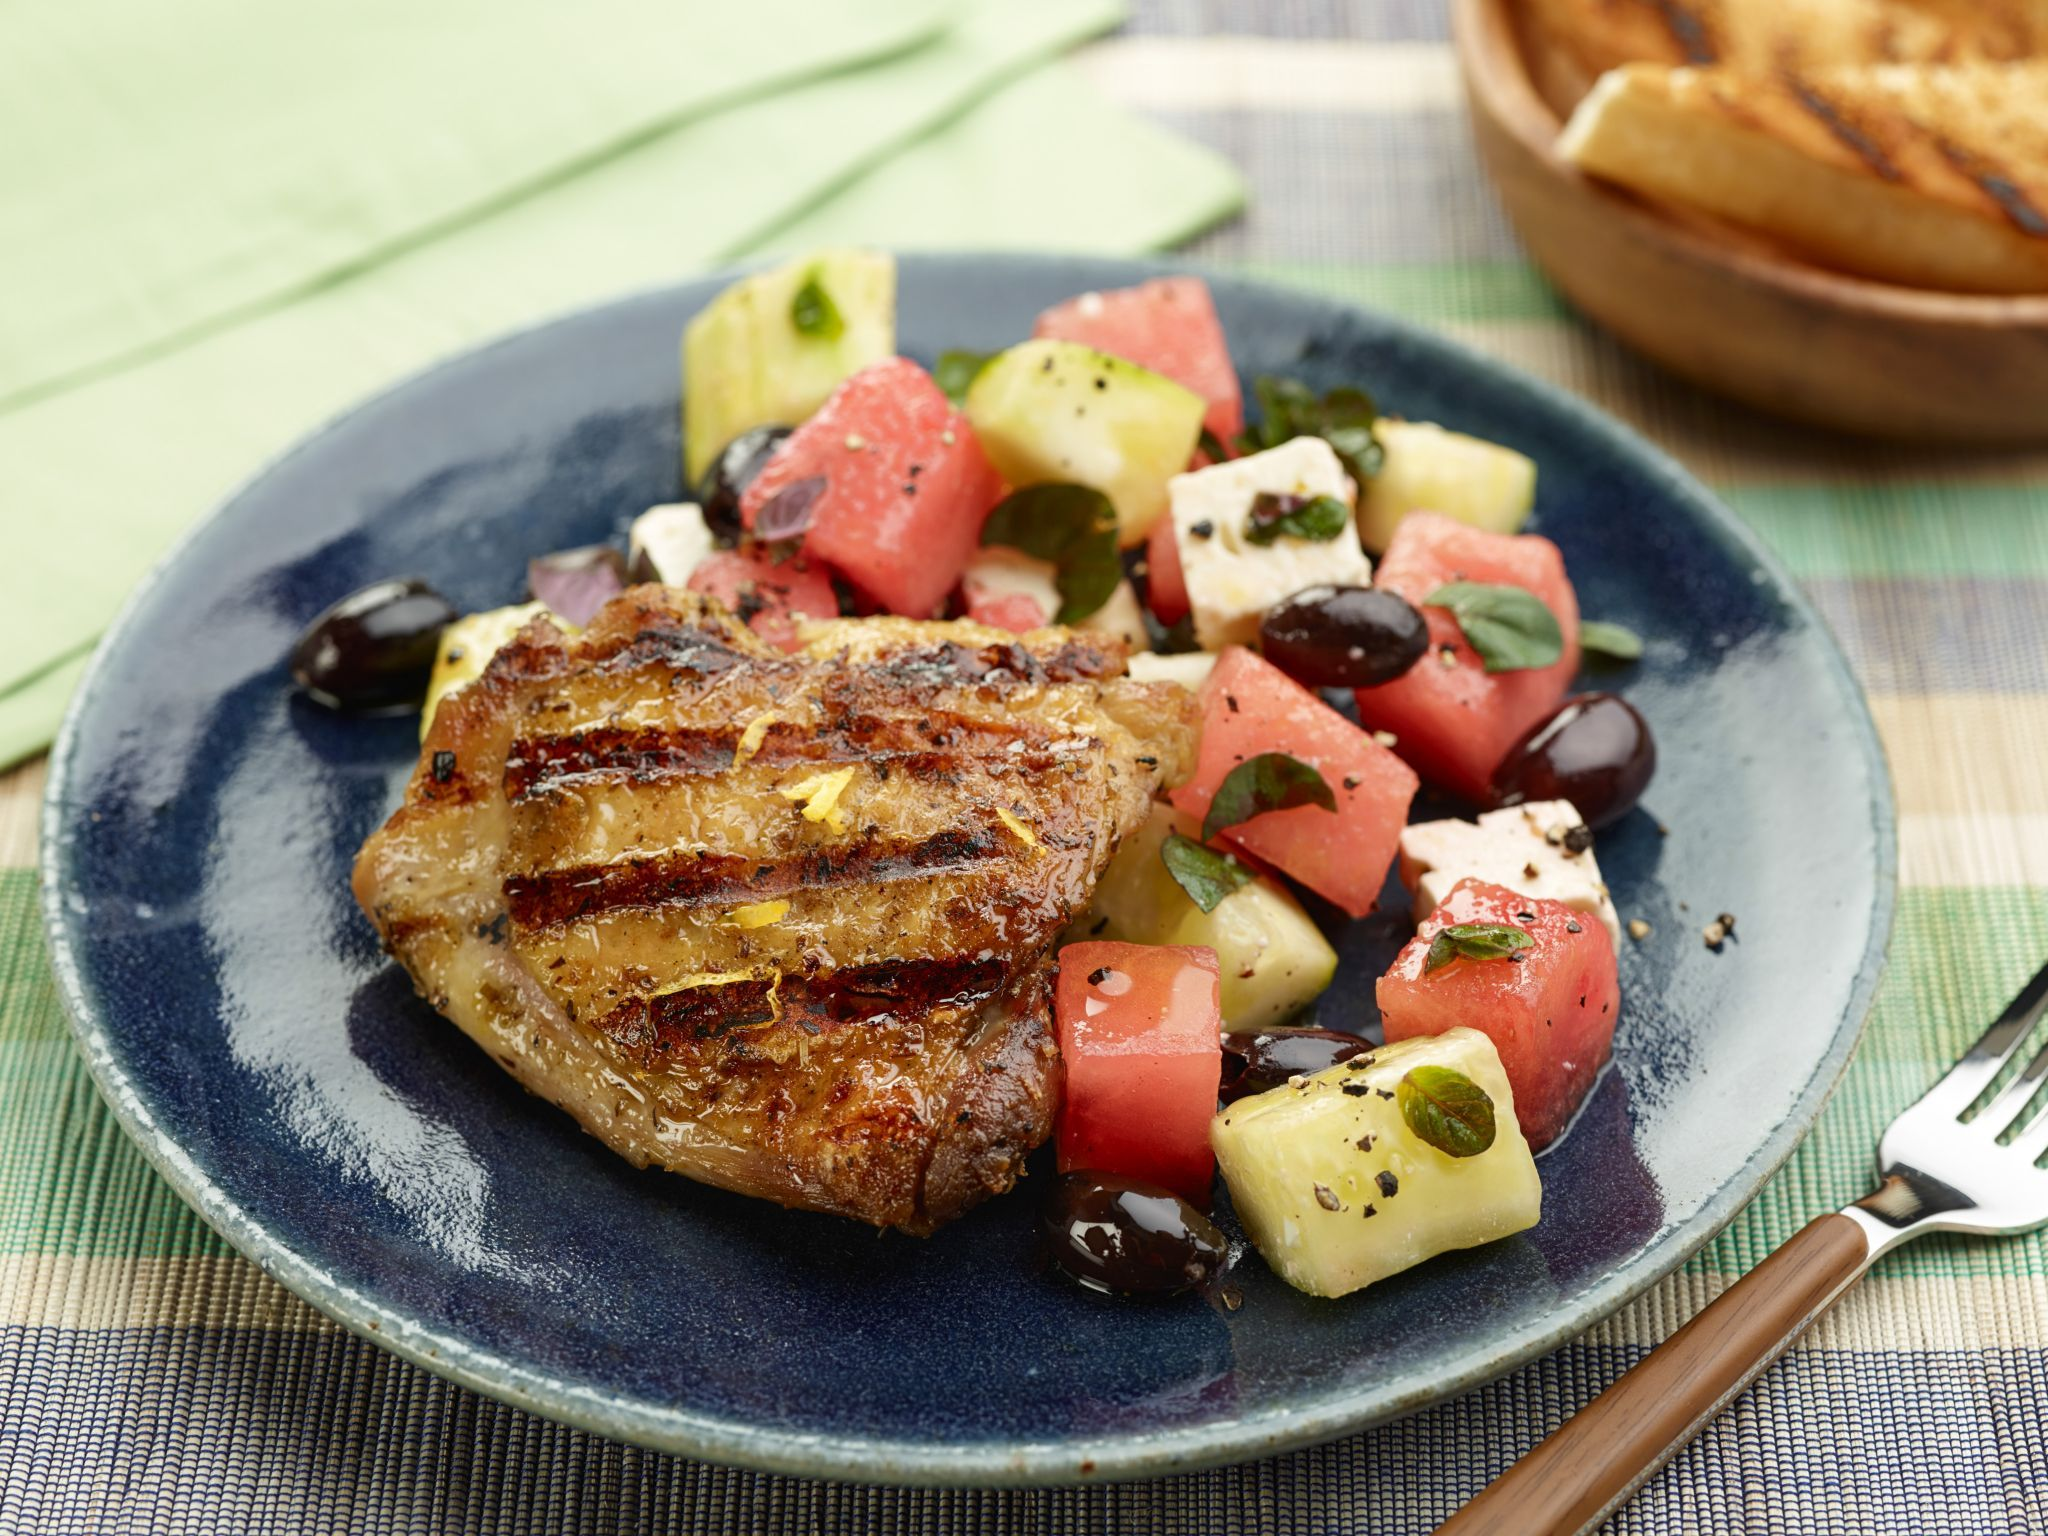 30 minute grilled chicken thighs with watermelon and feta salad 30 minute grilled chicken thighs with watermelon and feta salad forumfinder Choice Image